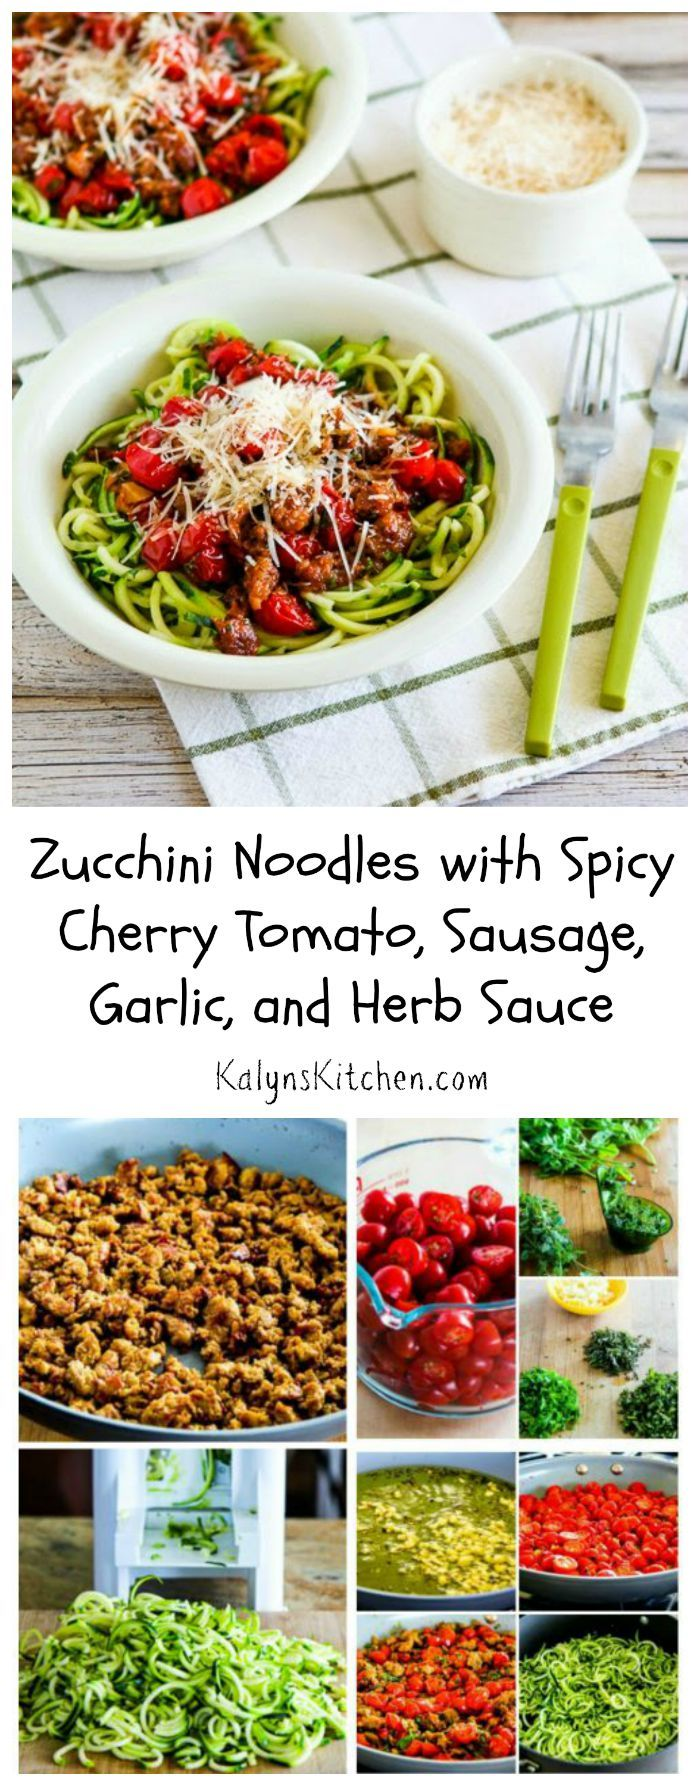 I've been making this Spicy Cherry Tomato, Sausage, Garlic, and Herb Sauce for years, and I love it with Zucchini Noodles! Great way to use cherry tomatoes when they explode in the garden, but this is also delicious with cherry tomatoes from the store. [from KalynsKitchen.com] #LowCarb #GlutenFree